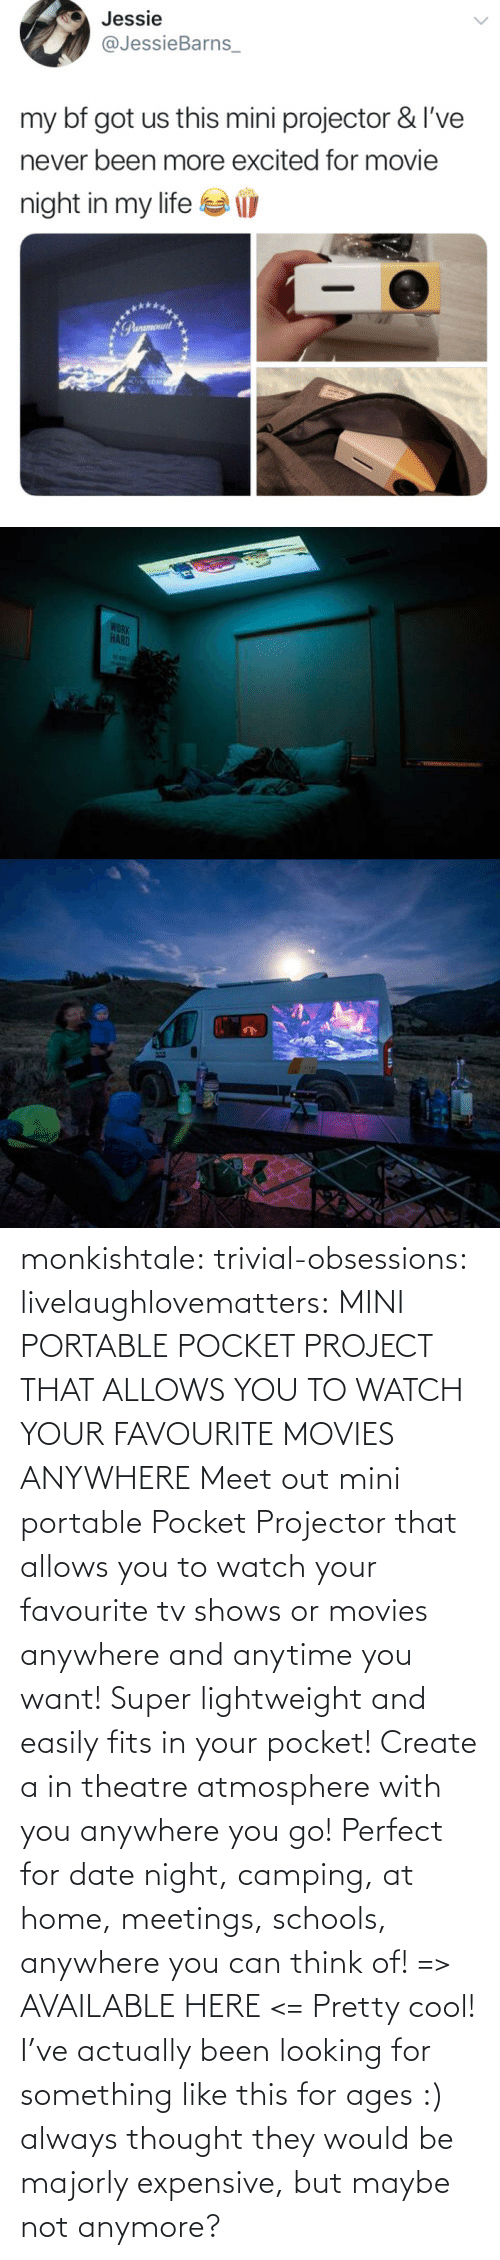 At: monkishtale: trivial-obsessions:   livelaughlovematters:   MINI PORTABLE POCKET PROJECT THAT ALLOWS YOU TO WATCH YOUR FAVOURITE MOVIES ANYWHERE Meet out mini portable Pocket Projector that allows you to watch your favourite tv shows or movies anywhere and anytime you want! Super lightweight and easily fits in your pocket! Create a in theatre atmosphere with you anywhere you go! Perfect for date night, camping, at home, meetings, schools, anywhere you can think of! => AVAILABLE HERE <=    Pretty cool!    I've actually been looking for something like this for ages :) always thought they would be majorly expensive, but maybe not anymore?